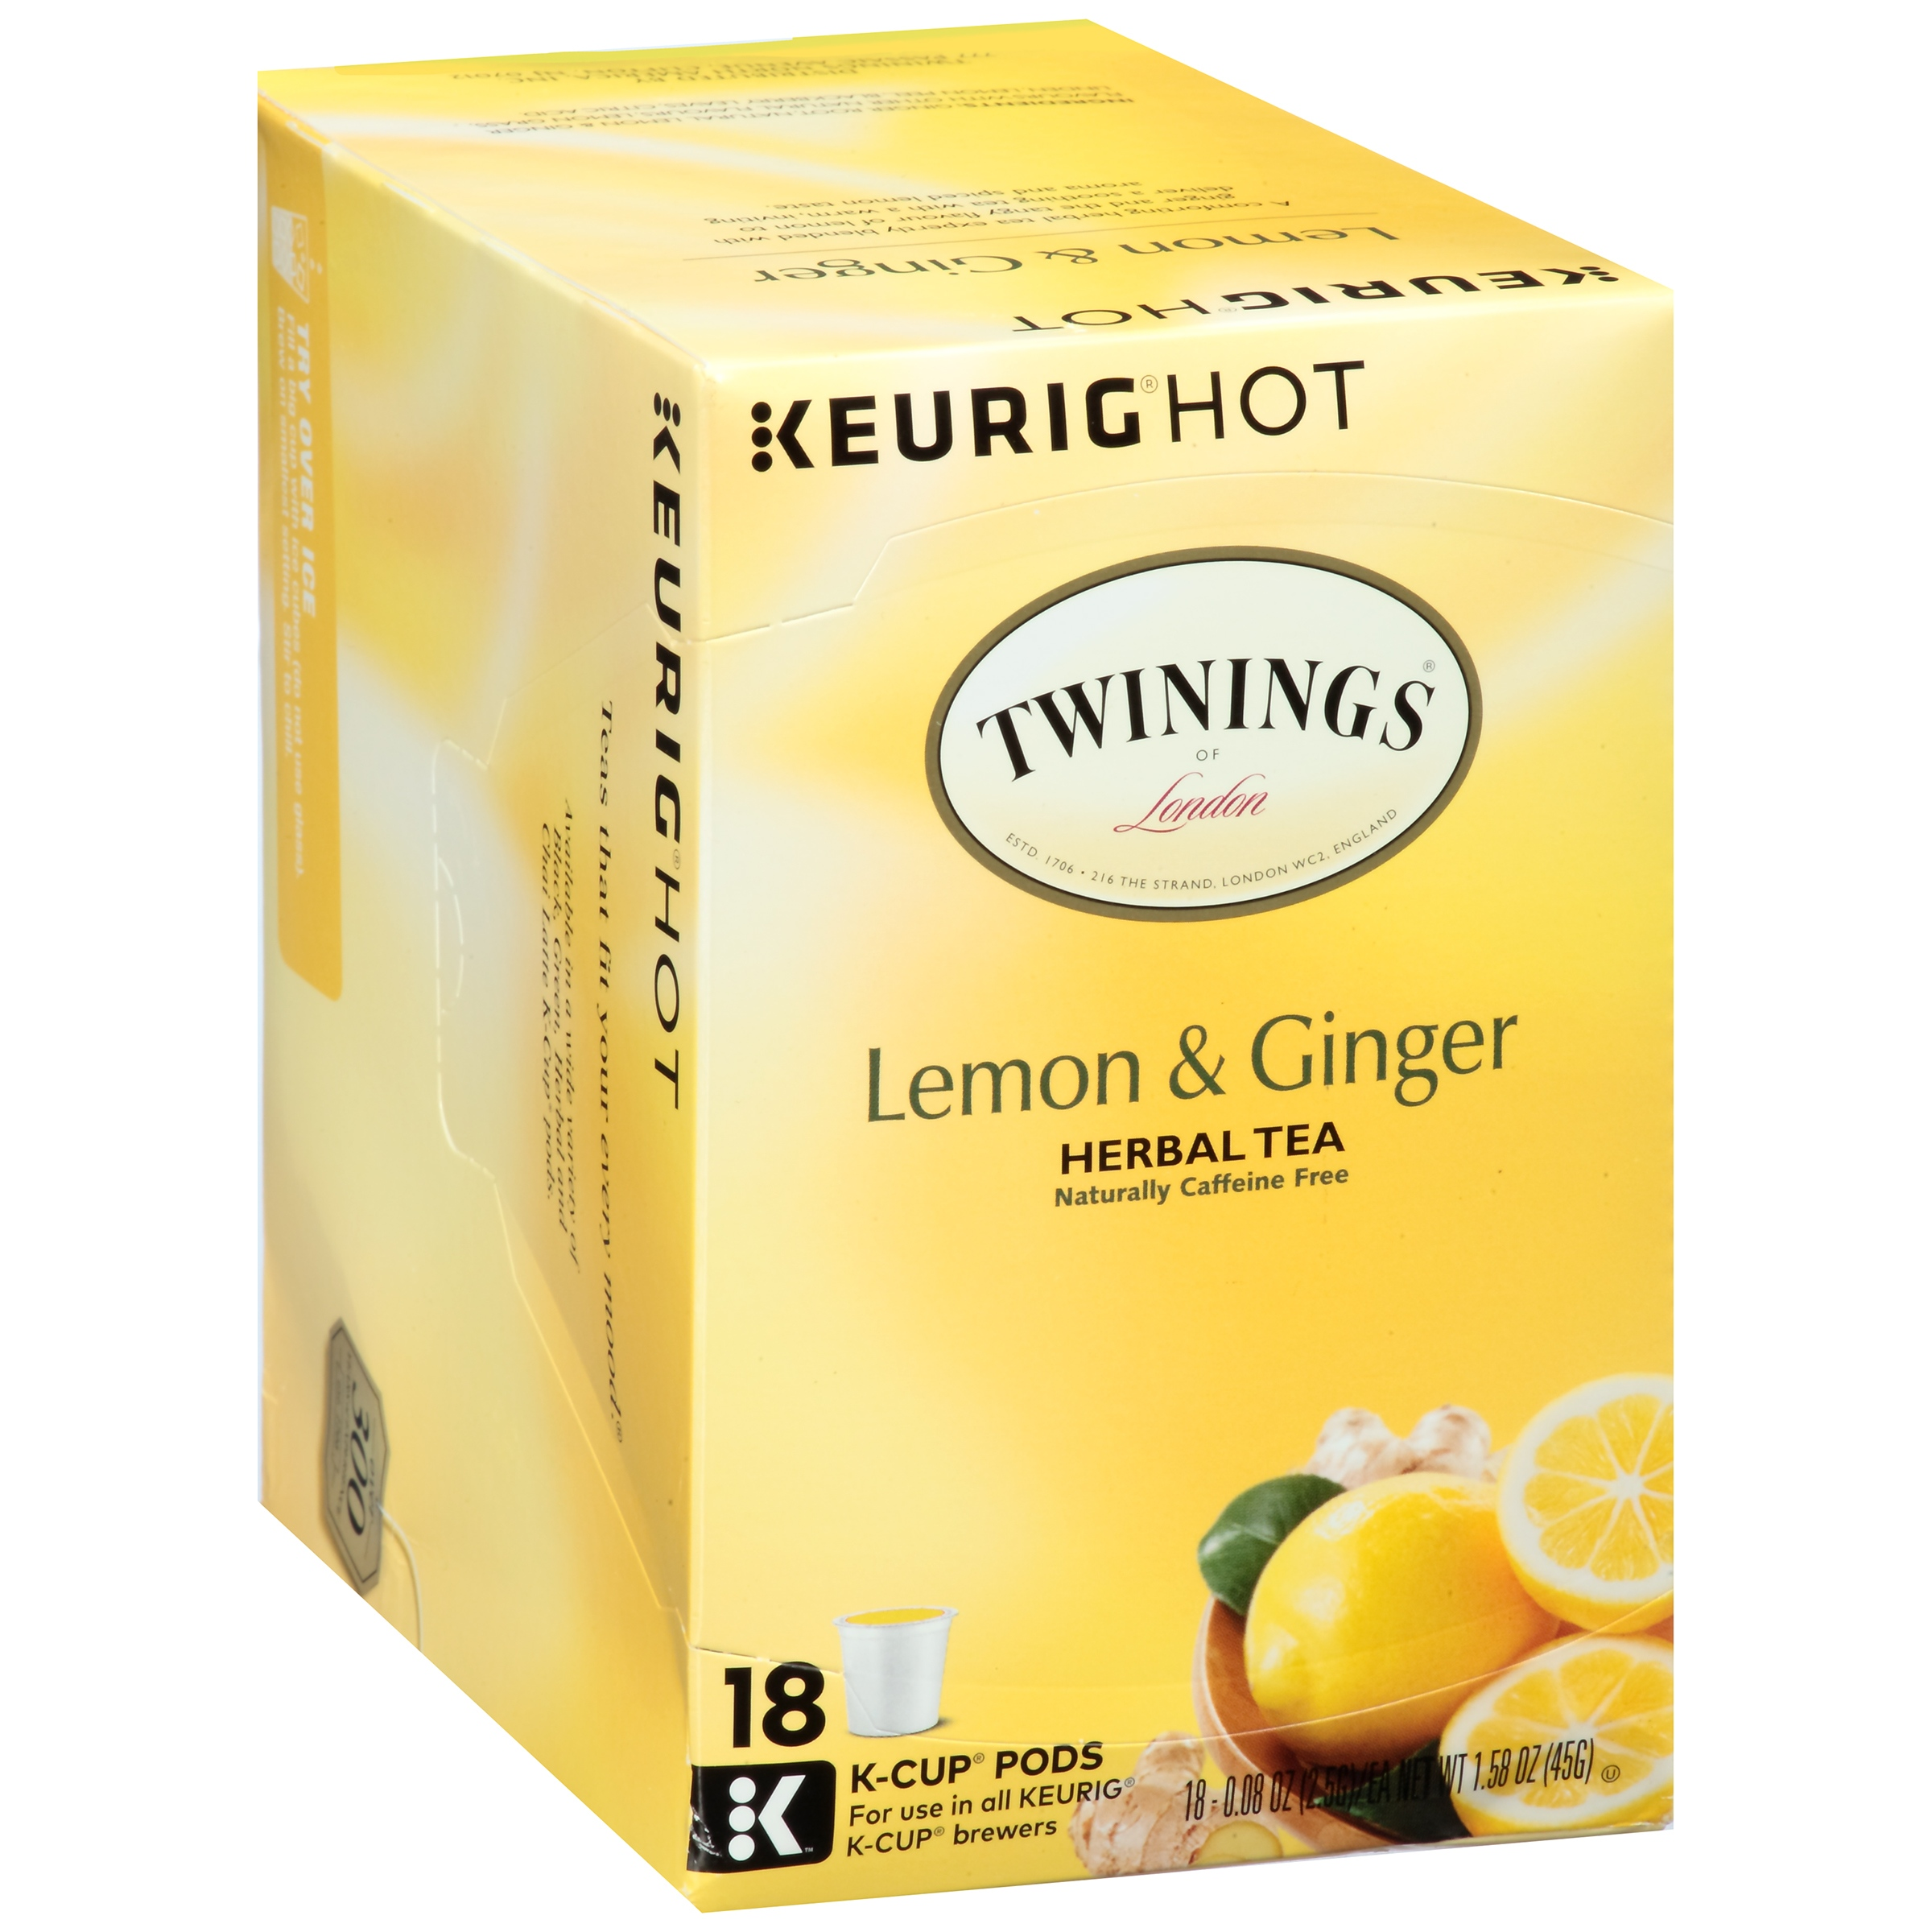 Twinings of London® Lemon & Ginger Herbal Tea 18 ct K-Cup® Pods 1.58 oz. Box